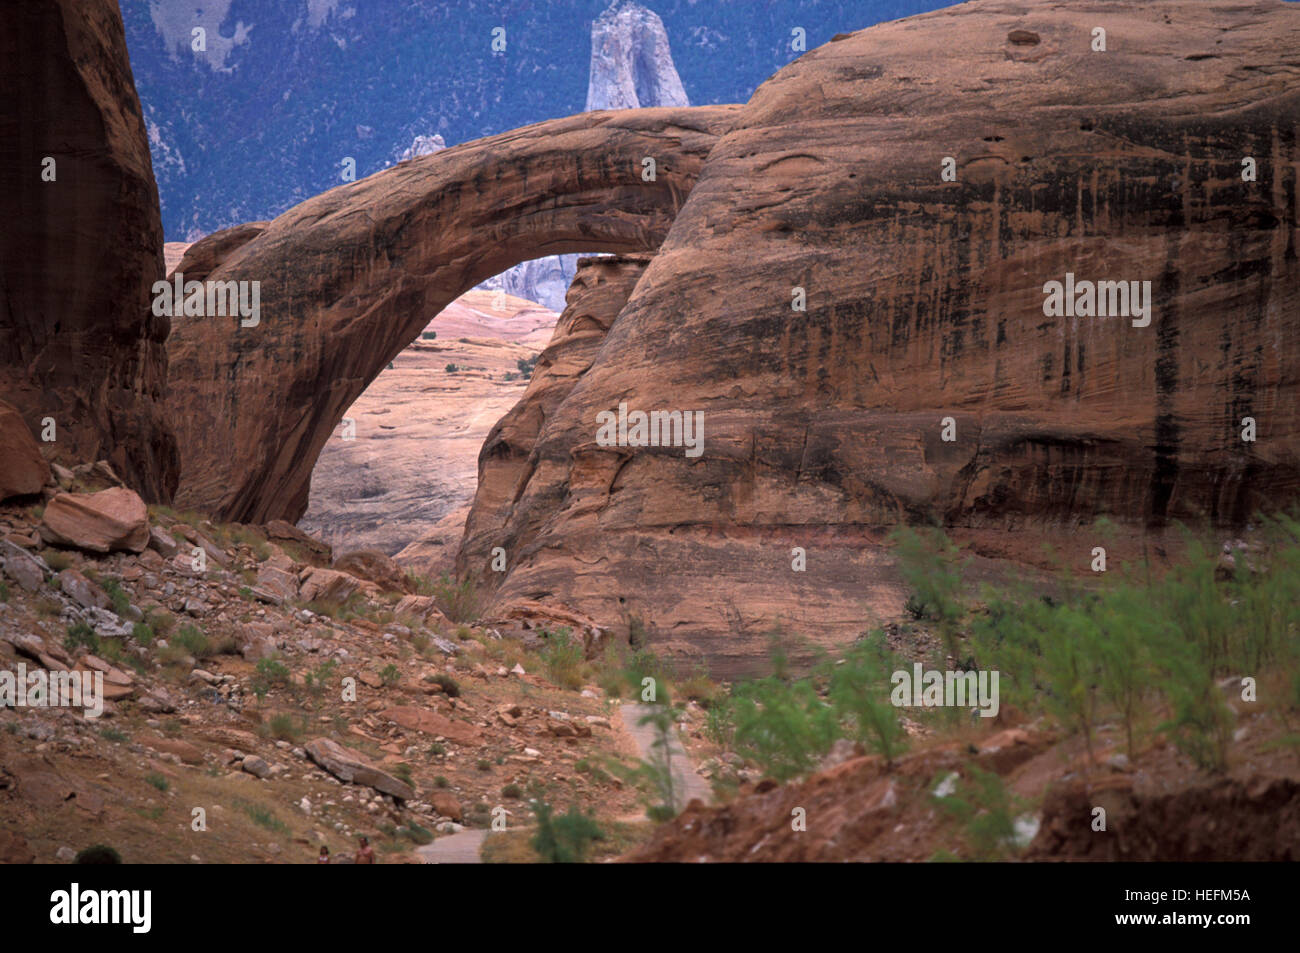 Il Rainbow Bridge National Monument in Glen Canyon National Recreation Area. Pagina. In Arizona. Stati Uniti d'America Immagini Stock